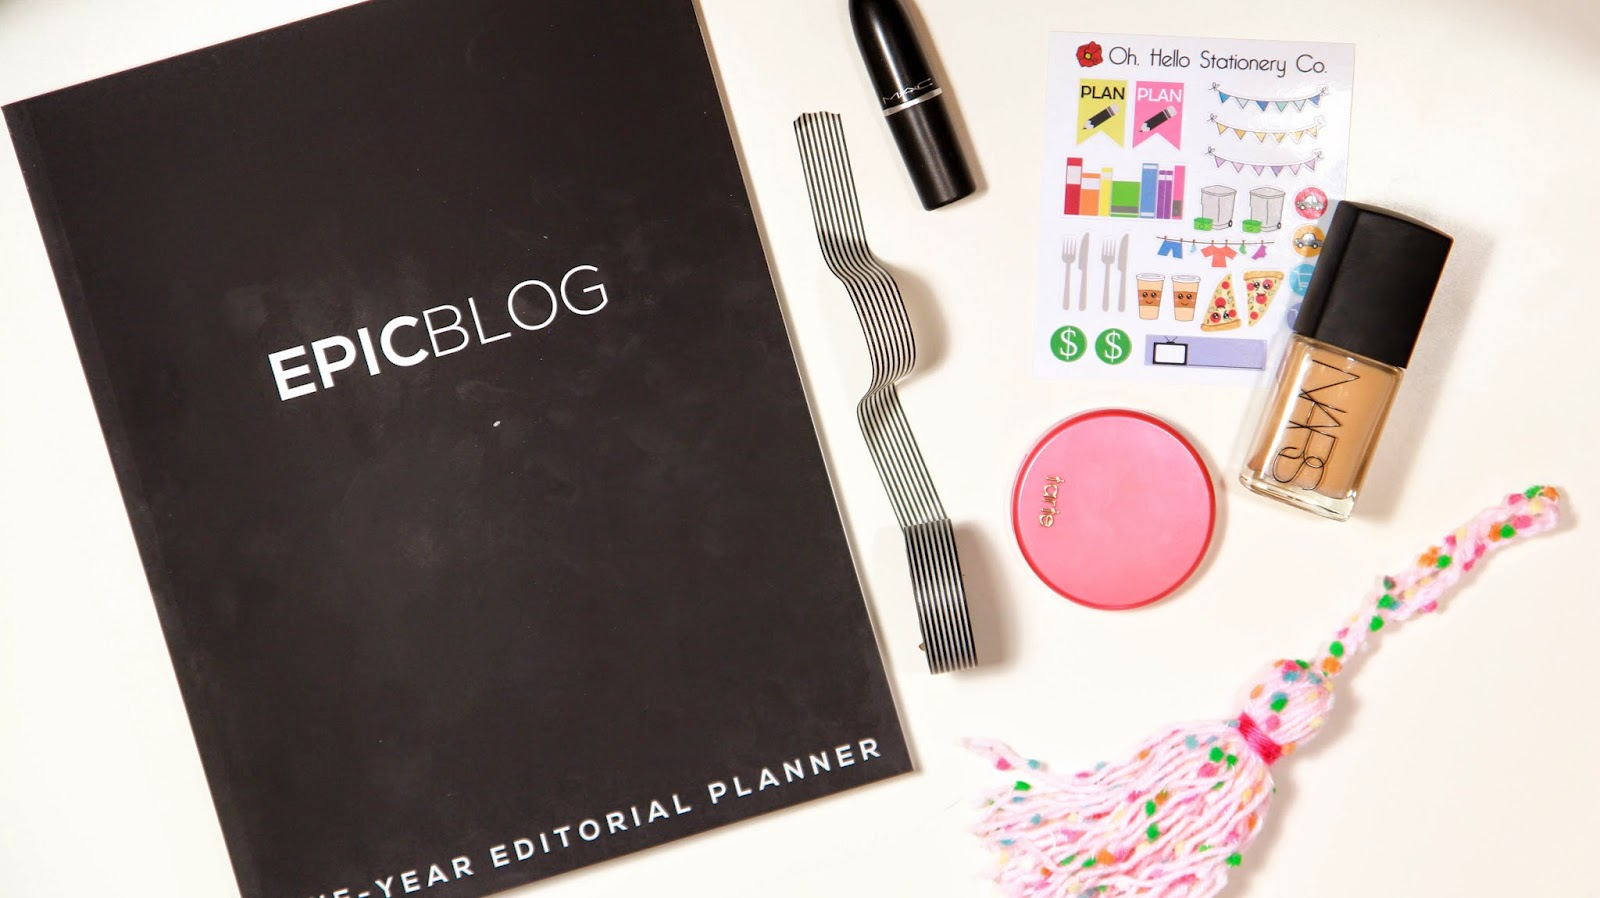 Epic Blog: One-Year Editorial Planner Review